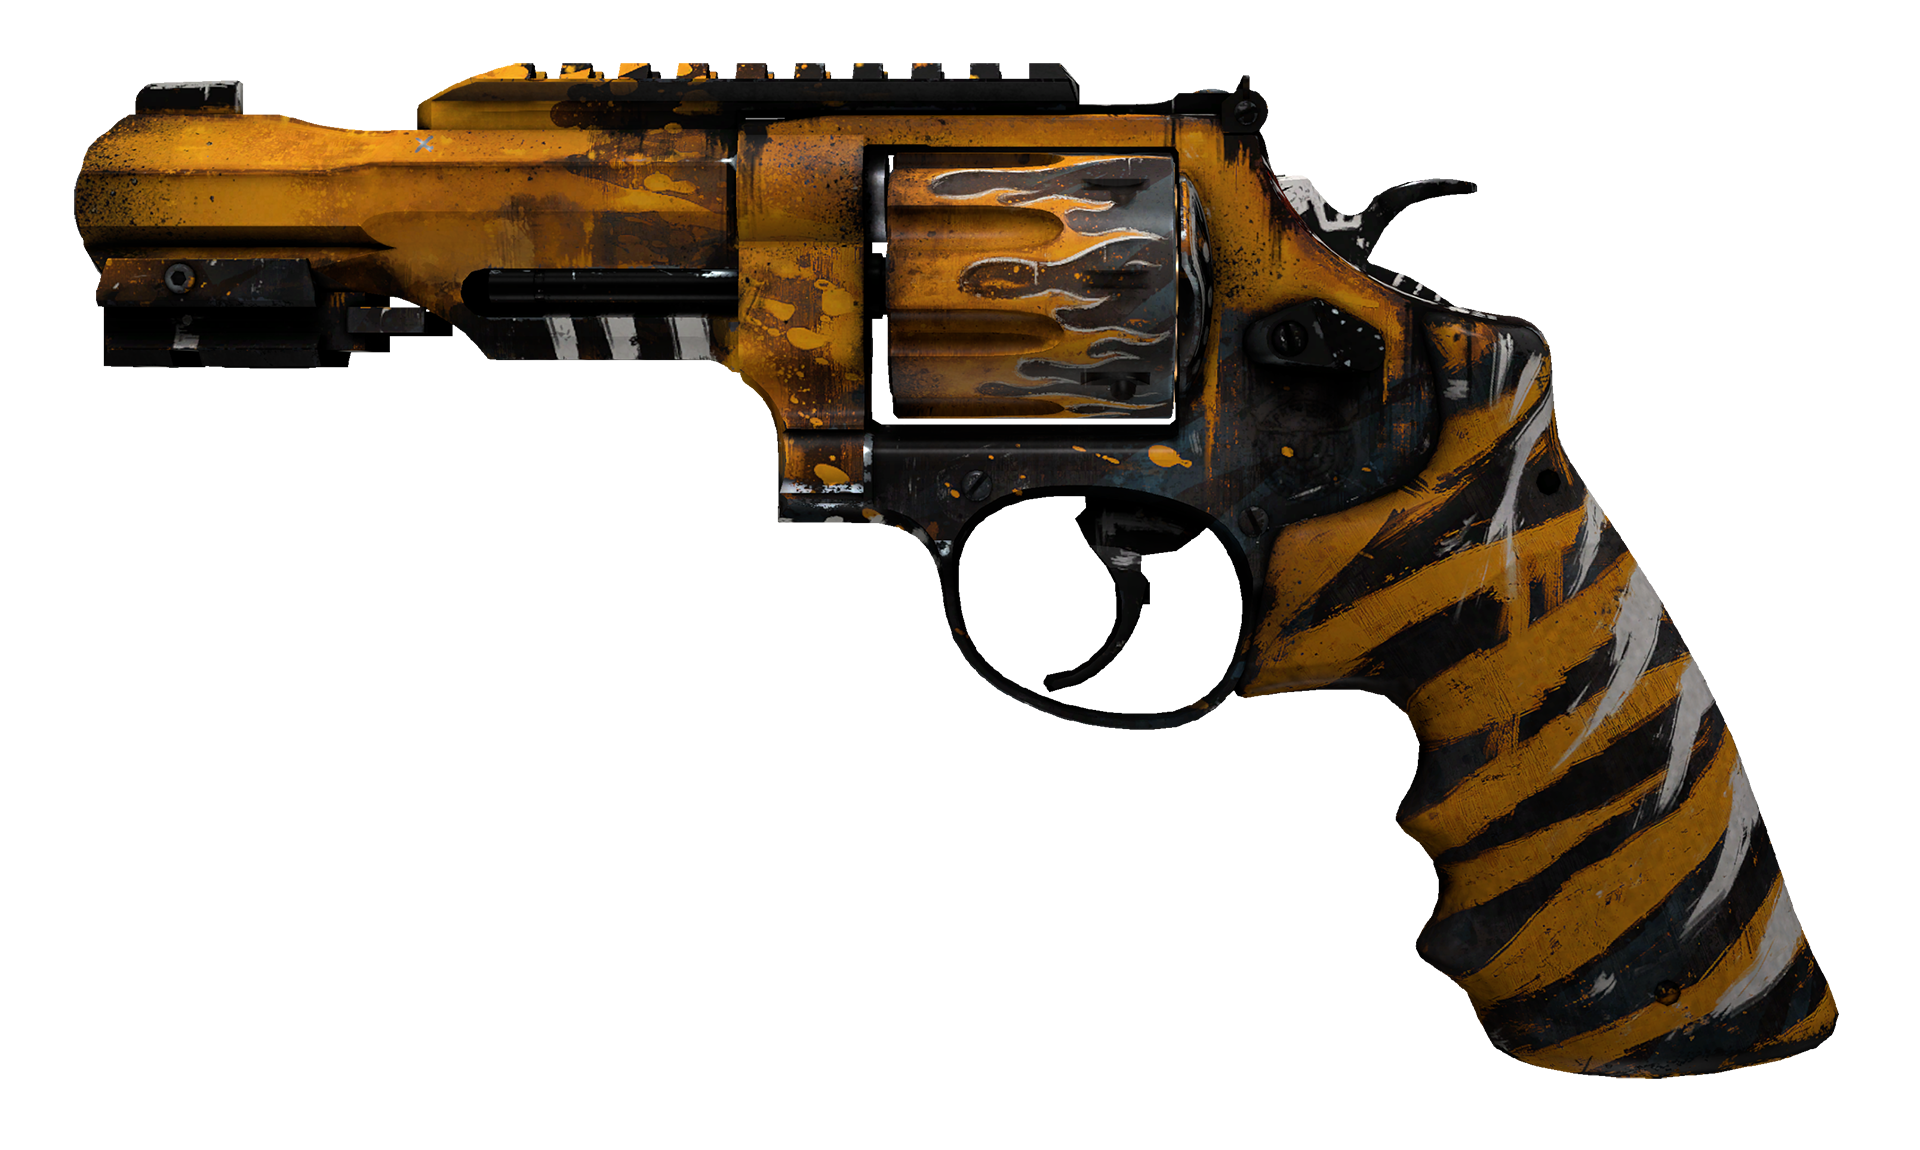 R8 Revolver Skull Crusher Large Rendering